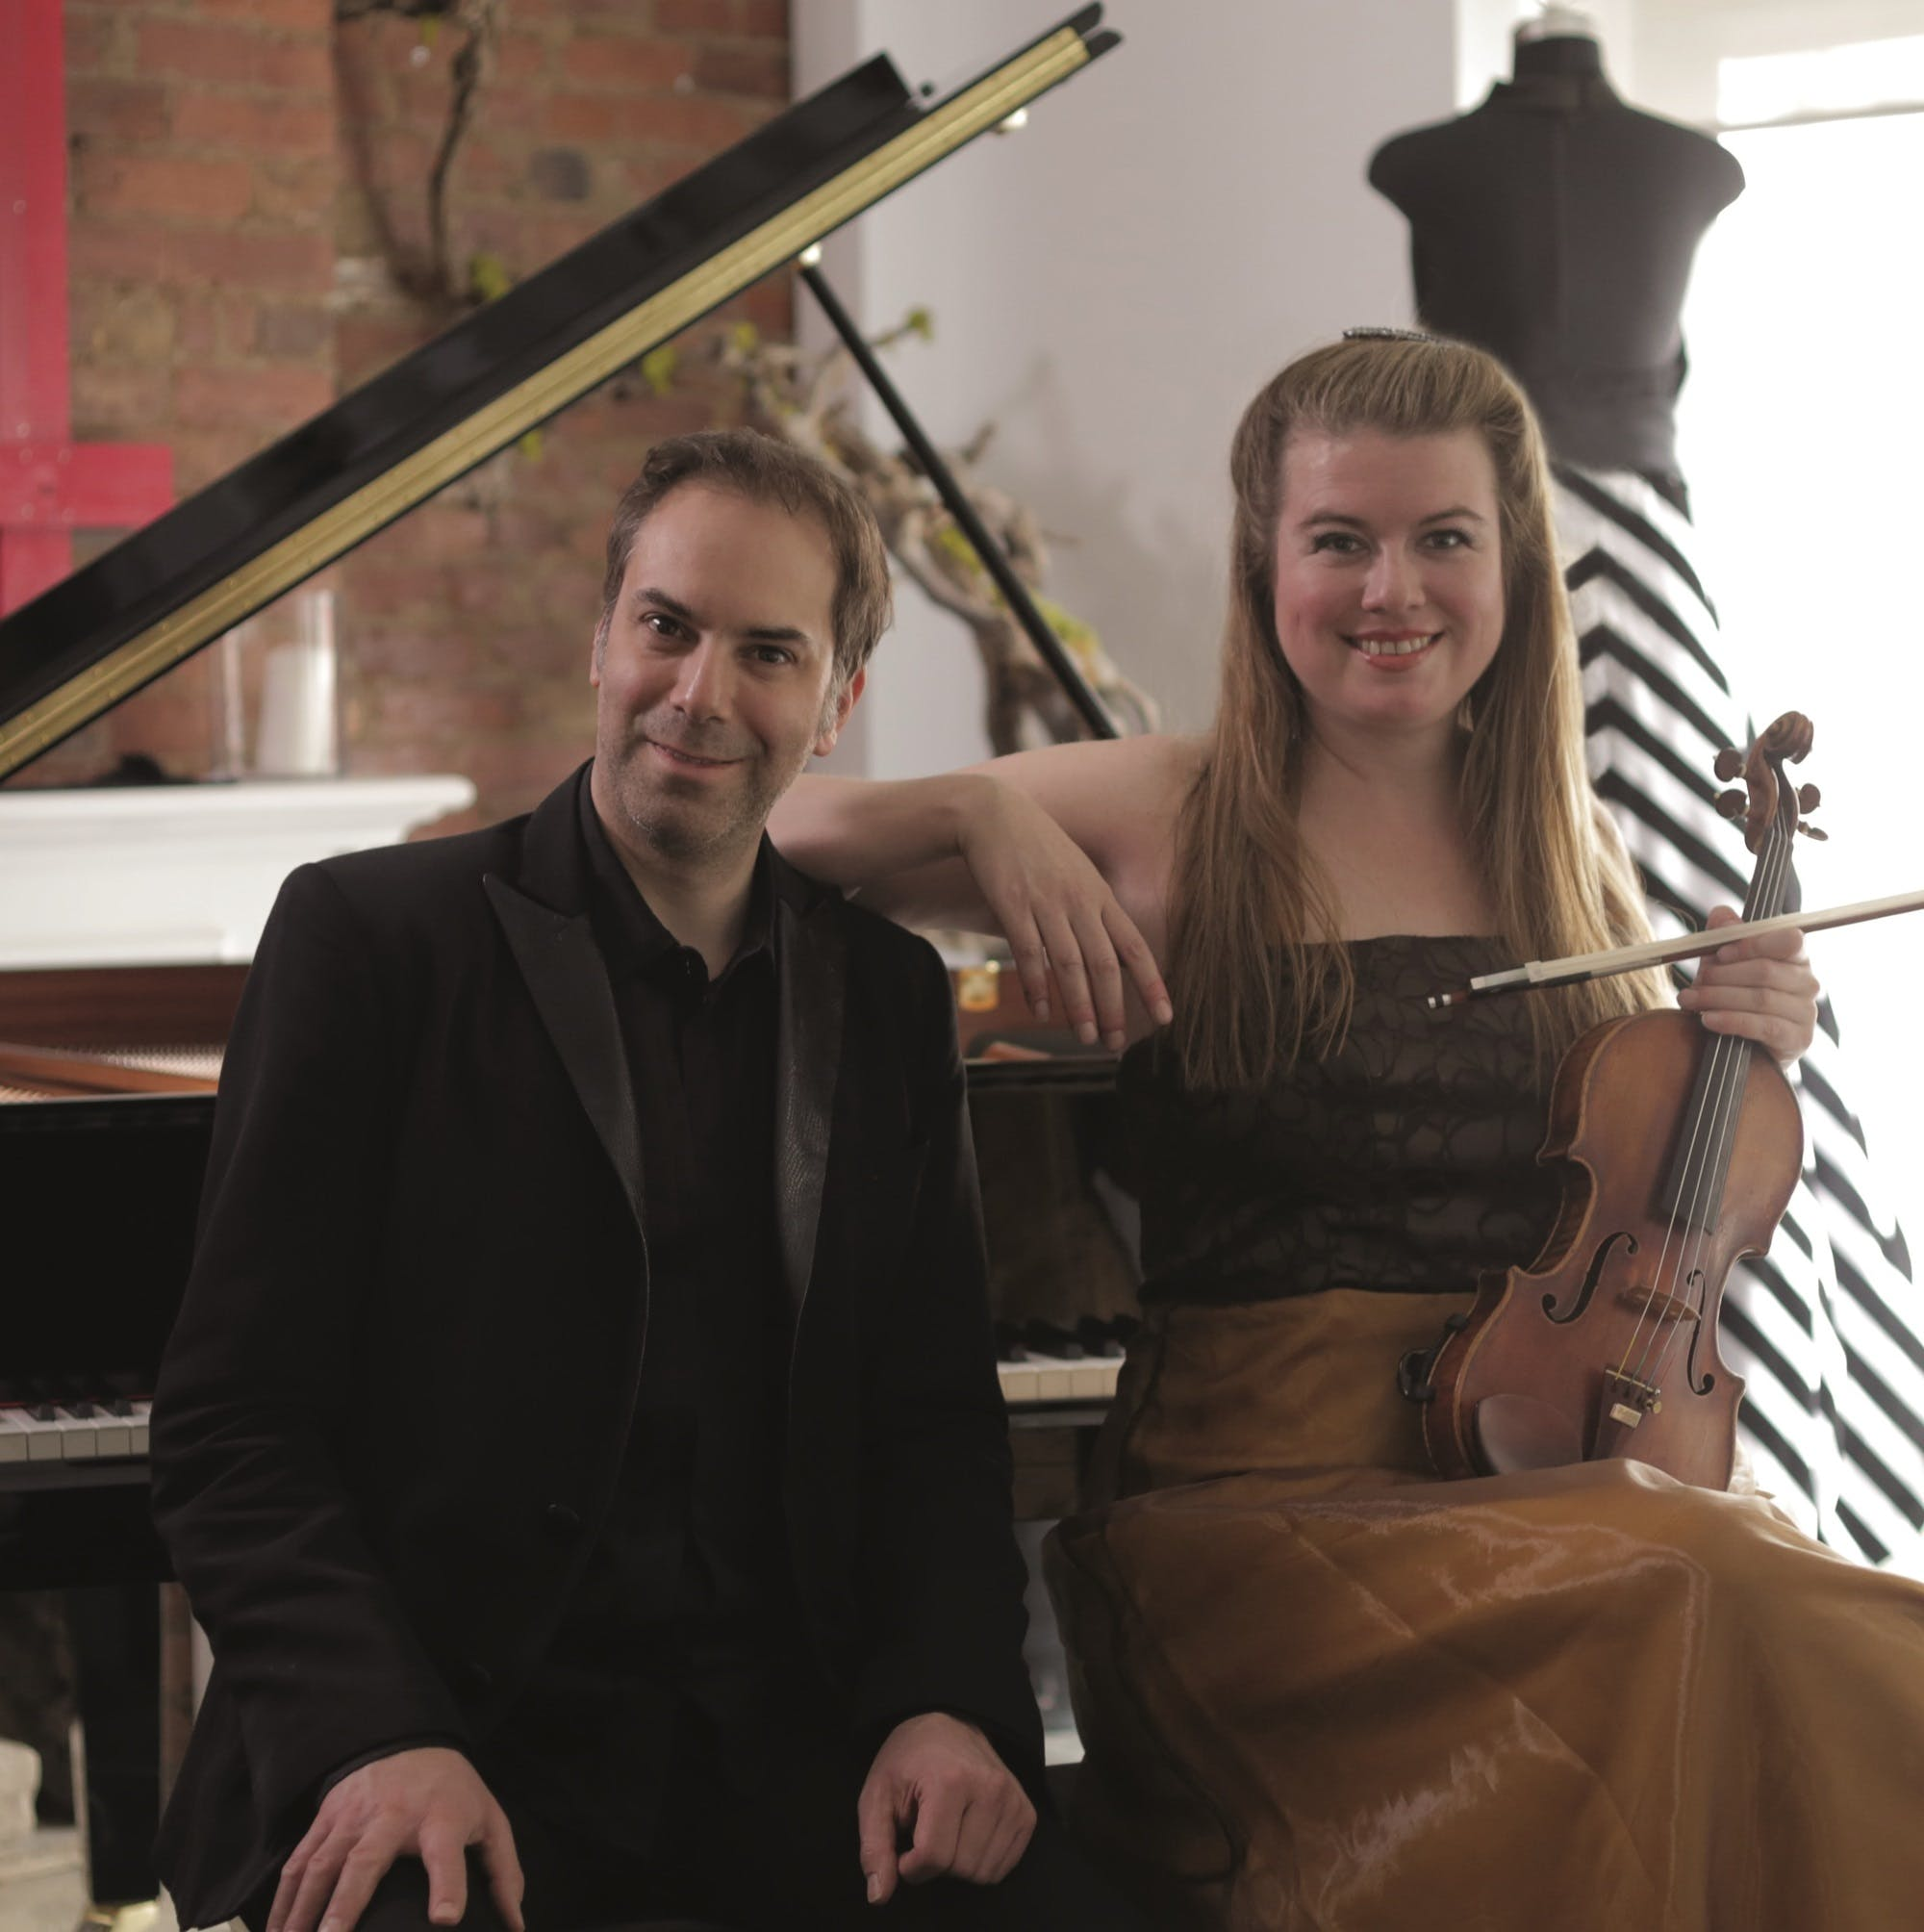 Lara St. John, Violin; Matt Herskowitz, Piano at Brooklyn Central Public Library